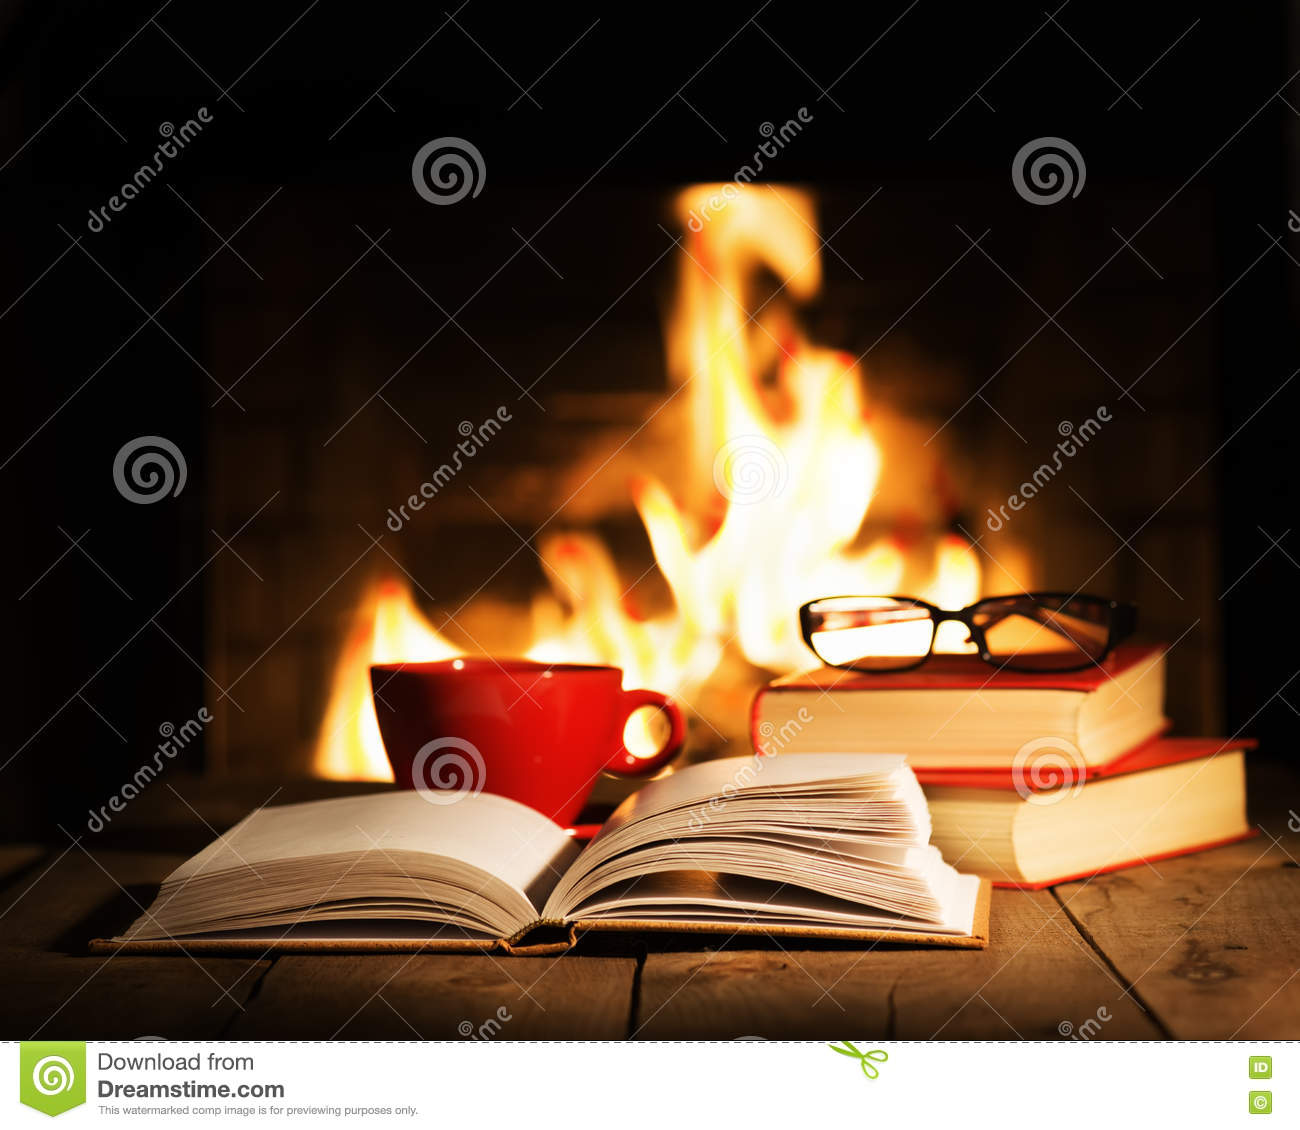 red cup and old books on wooden table near fireplace stock photo